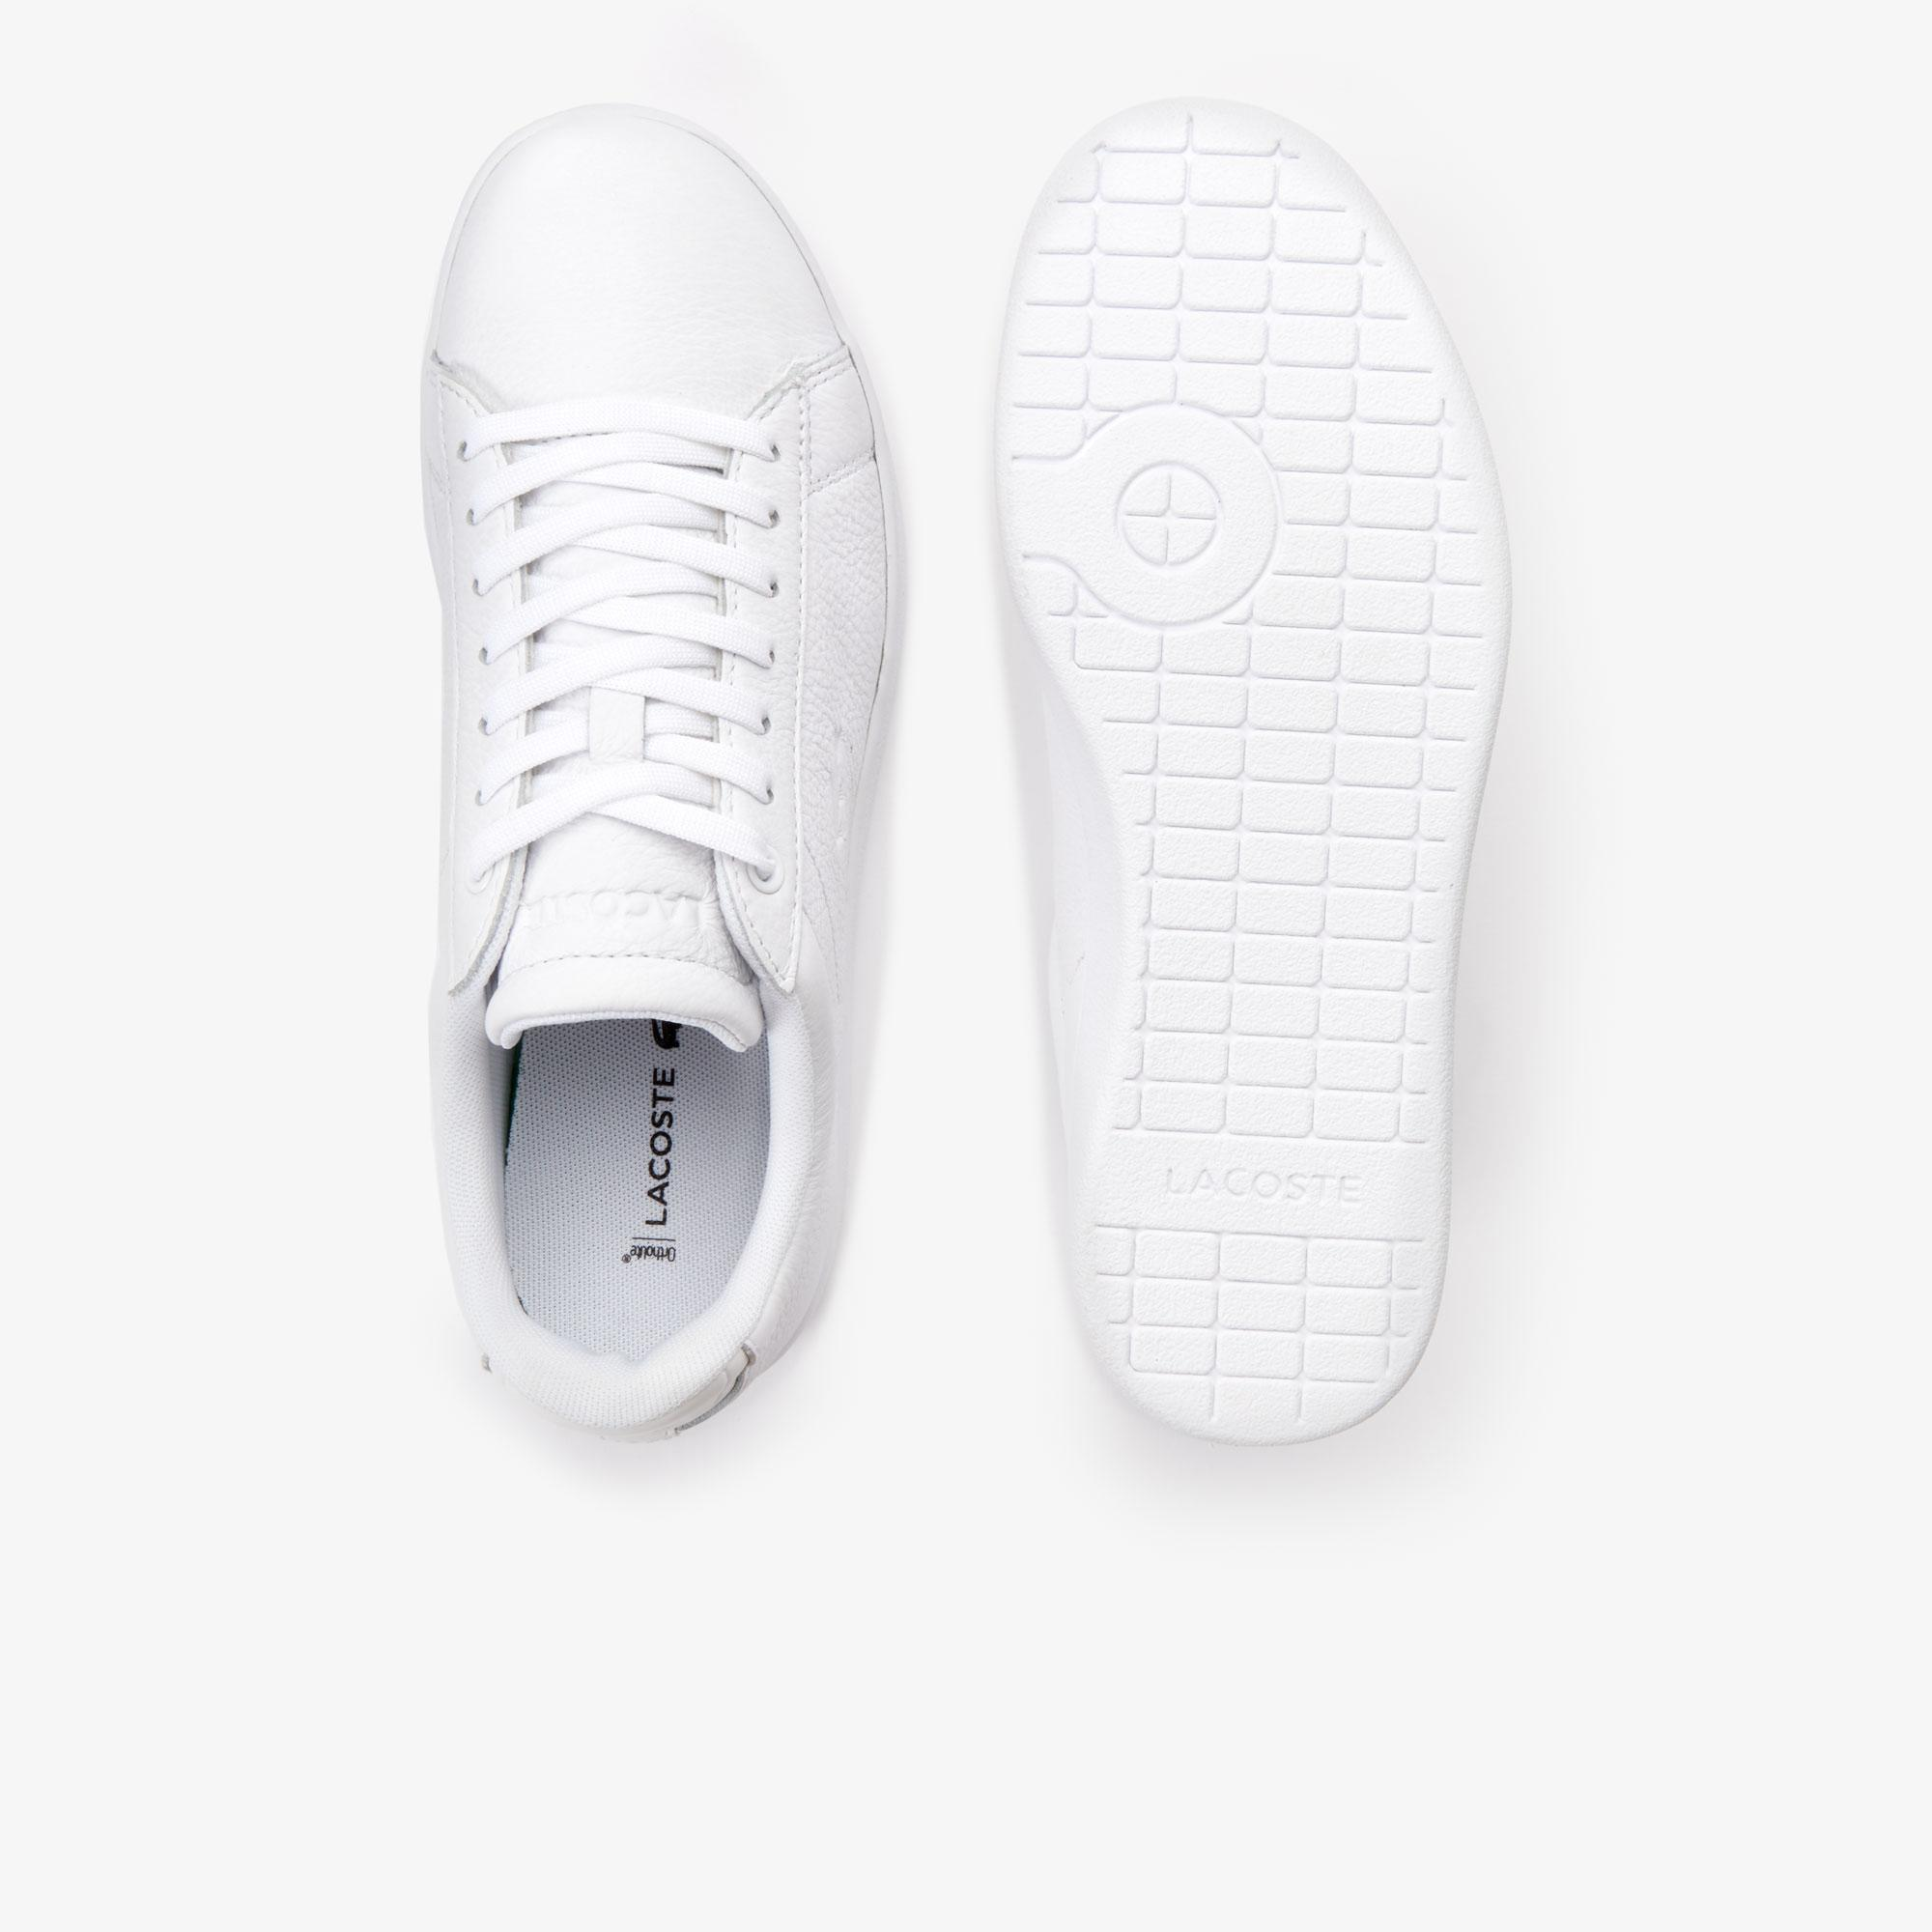 Lacoste Women's Court Slam Shoes